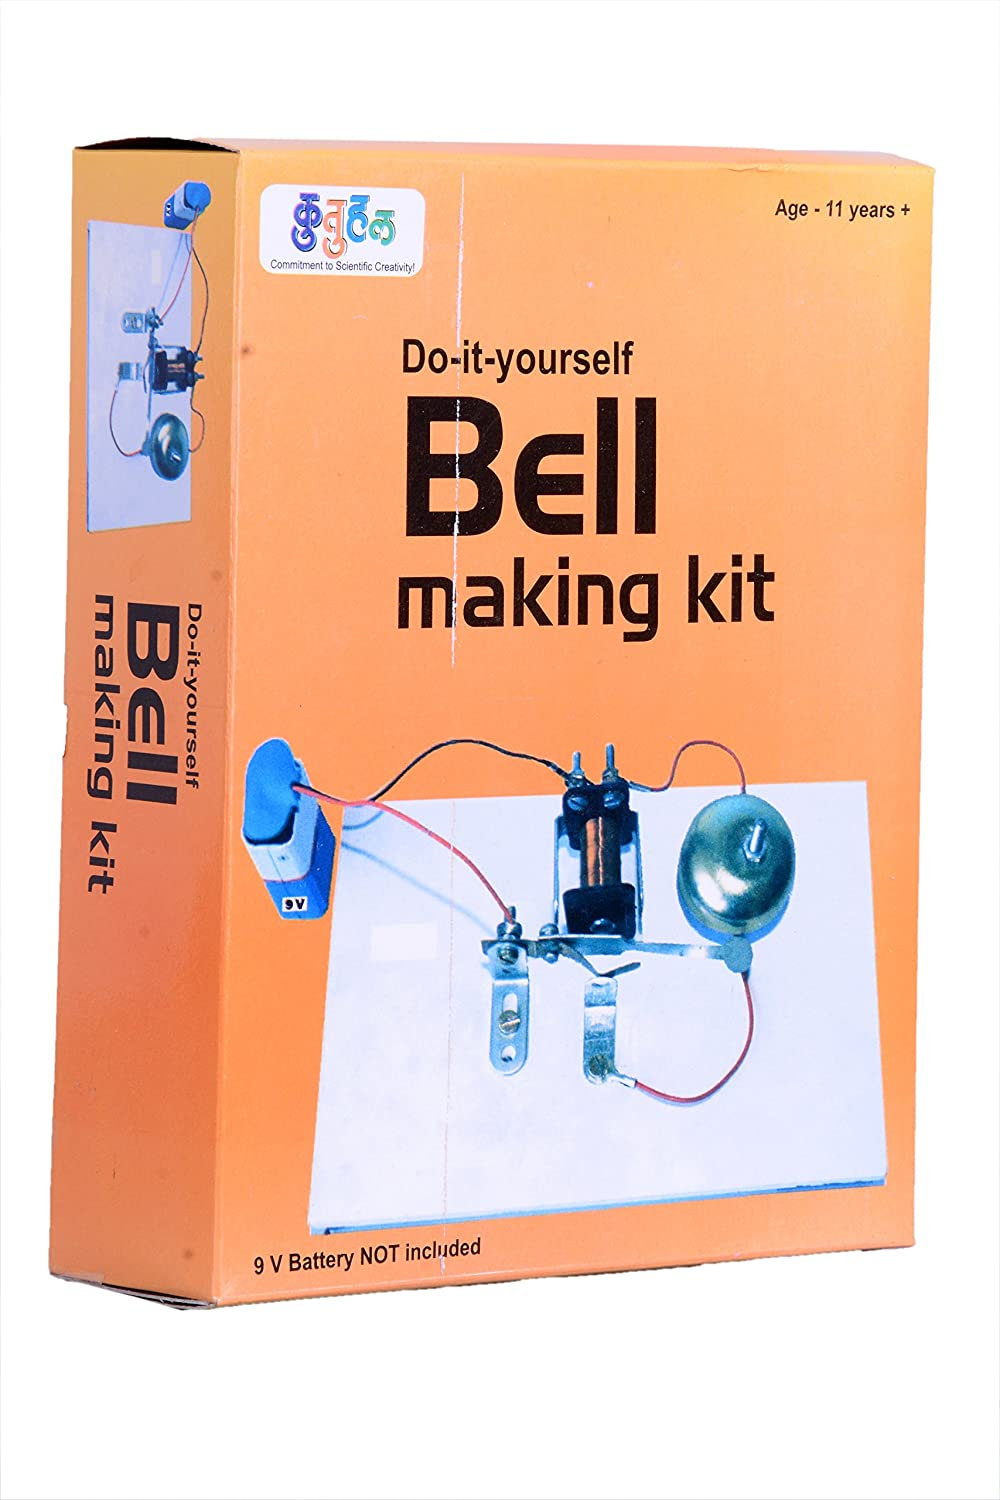 Electronics learning kits online buy electronics learning kits for a13 electric bell making kit do it yourself educational toy science project solutioingenieria Image collections